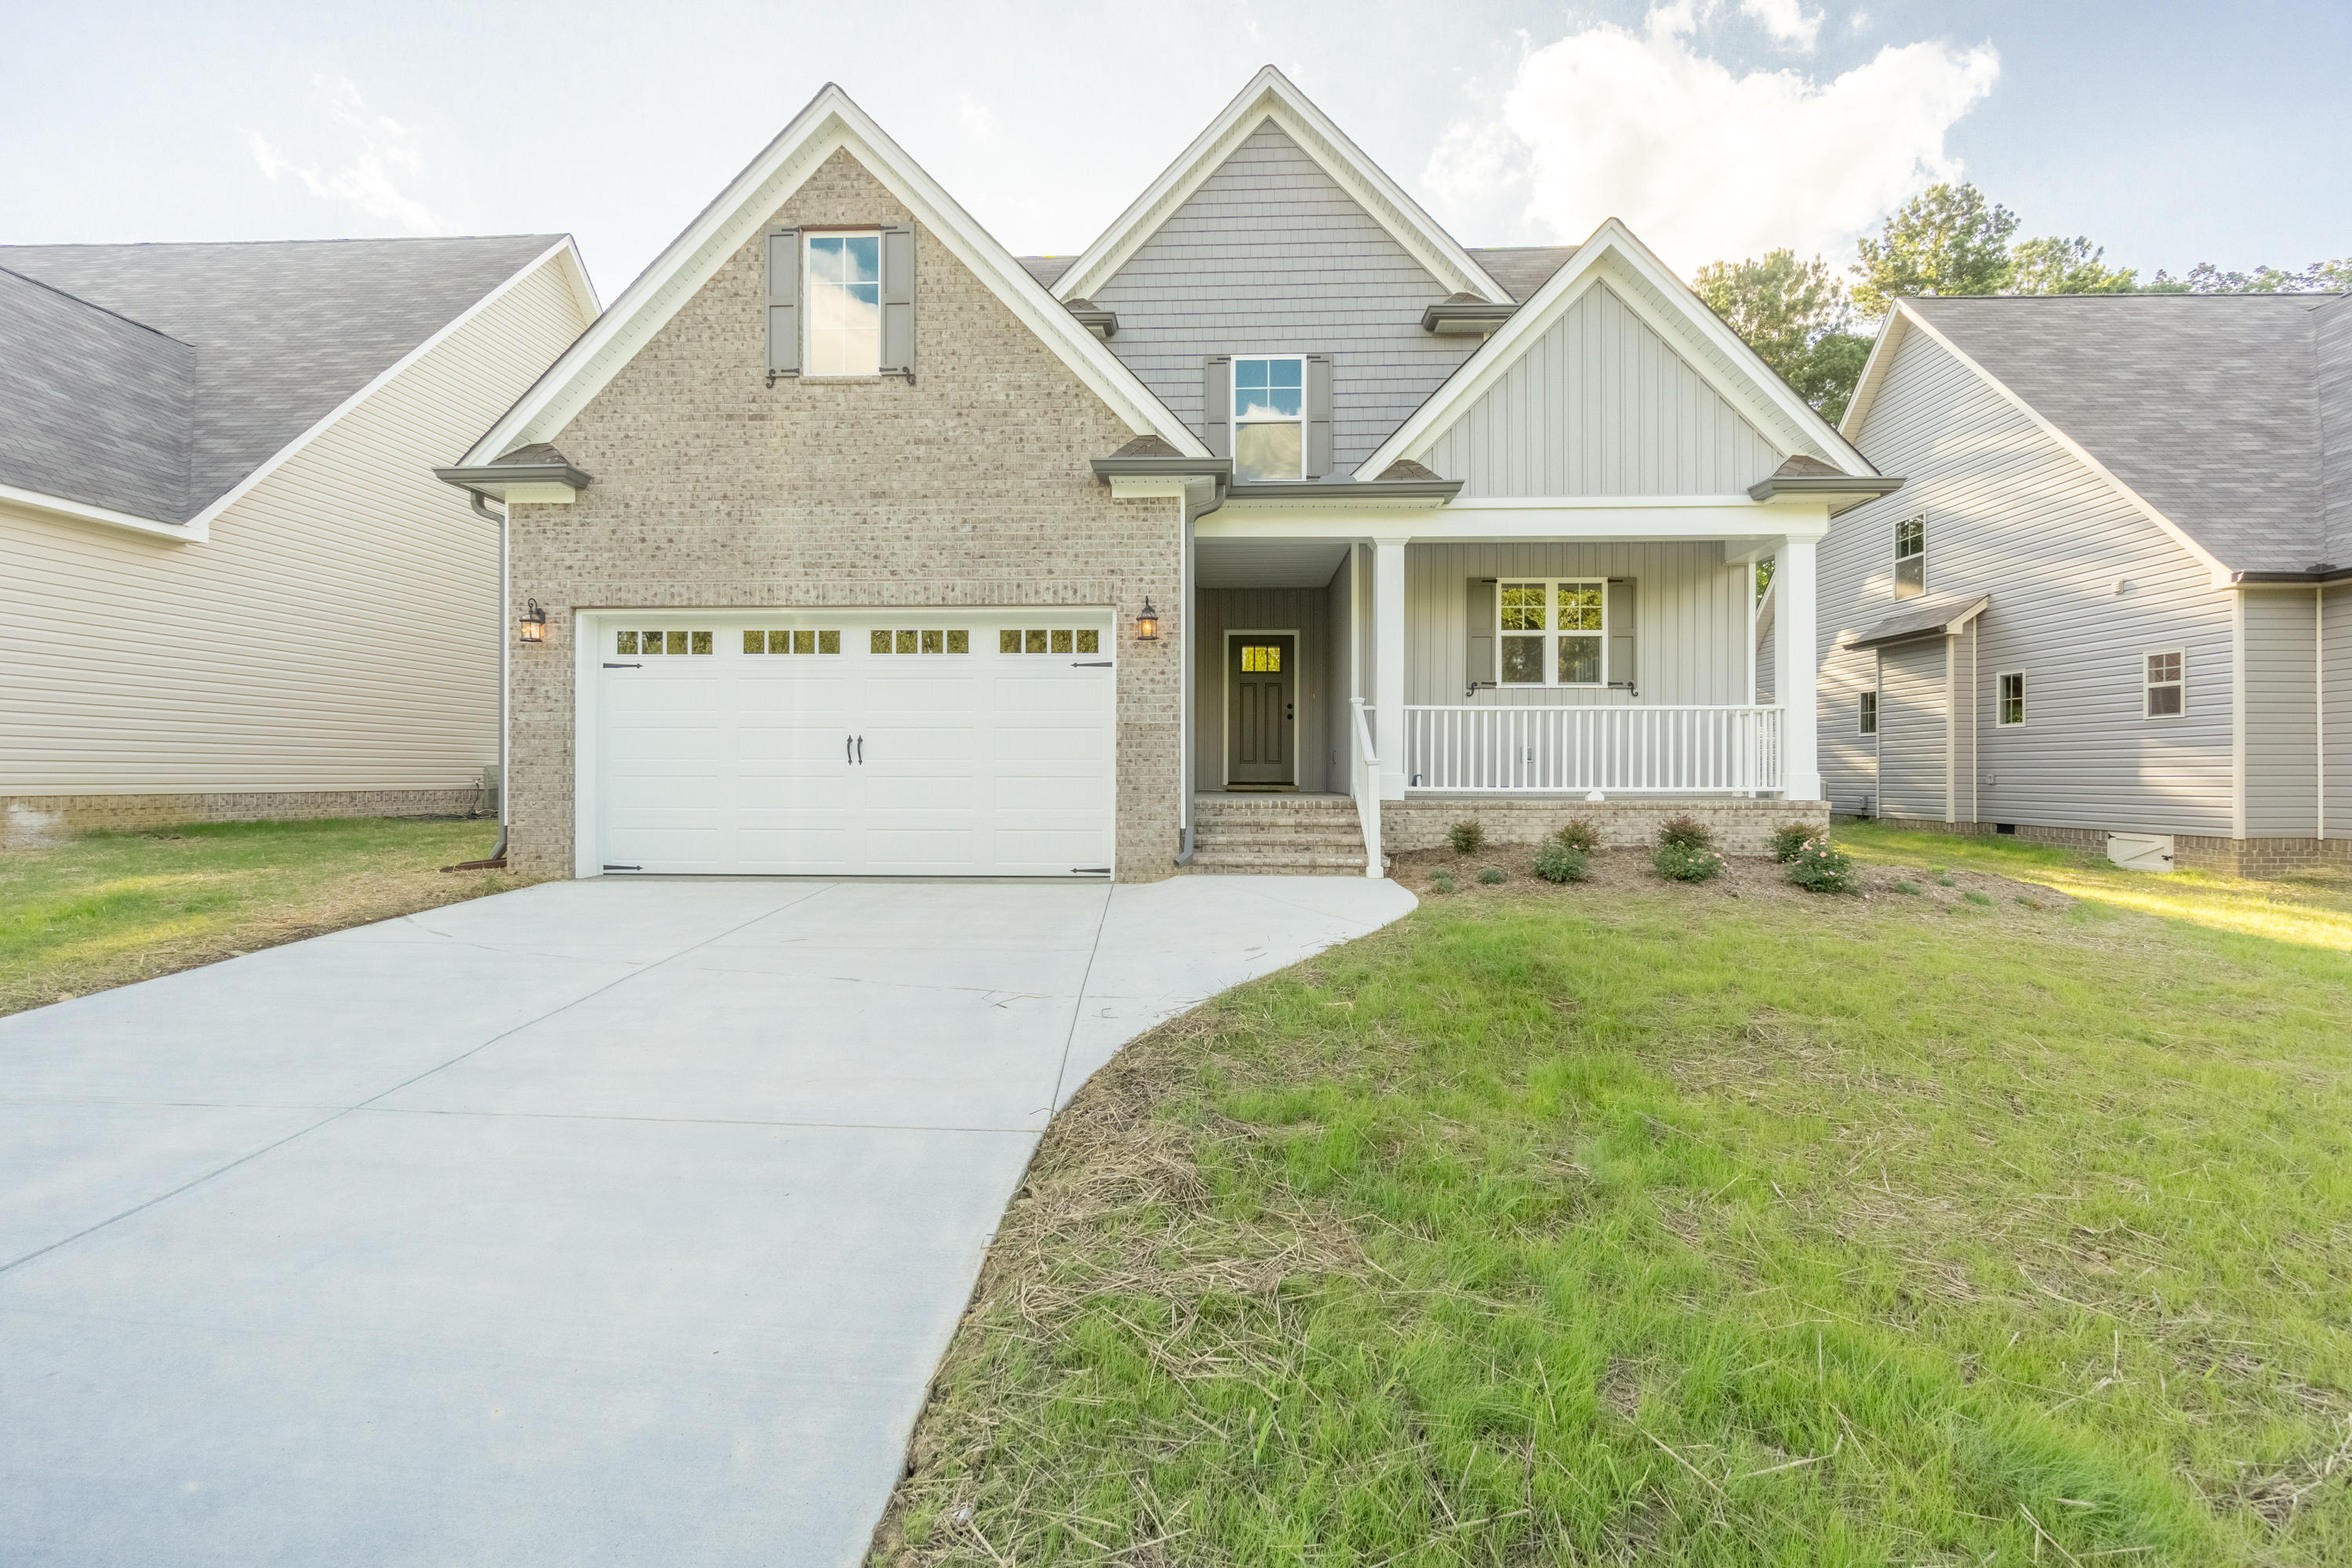 1859  Oakvale Lot 7 Dr 37421 - One of Chattanooga Homes for Sale